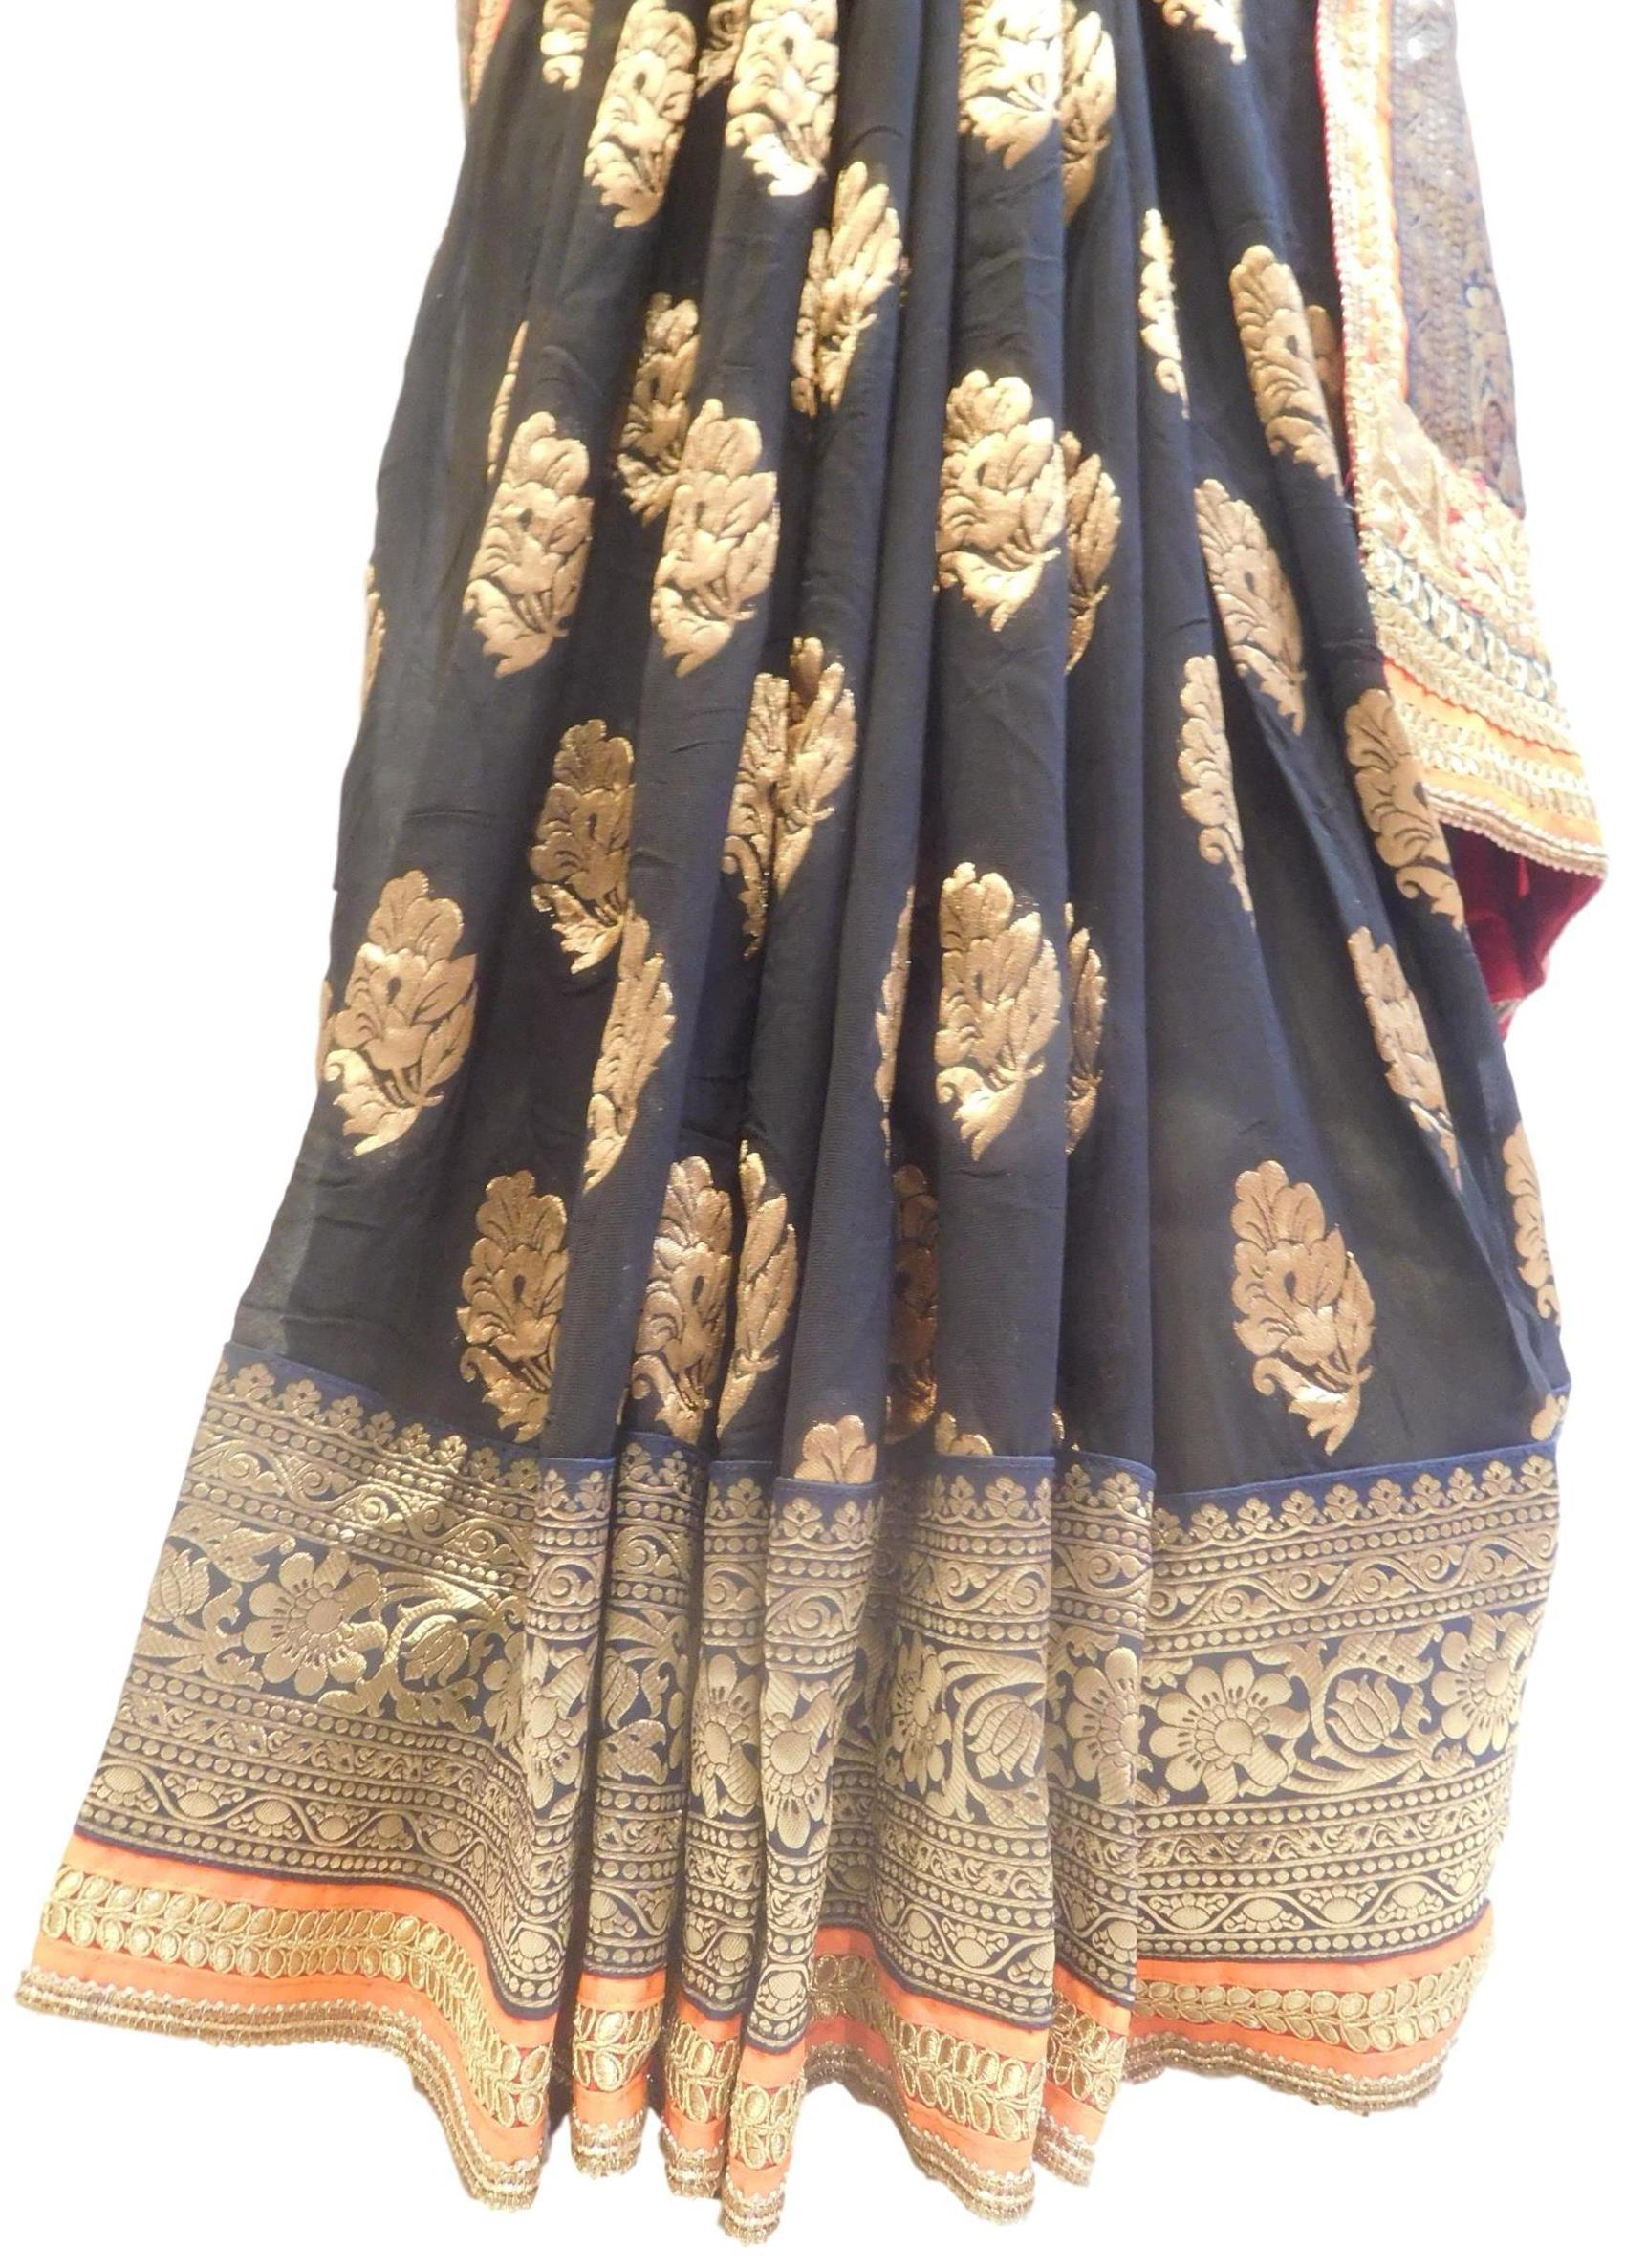 Blue & Black Designer Wedding Partywear Ethnic Bridal Georgette (Viscos) Hand Embroidery Zari Sequence Work Kolkata Women Banarasi Border Saree Sari E312